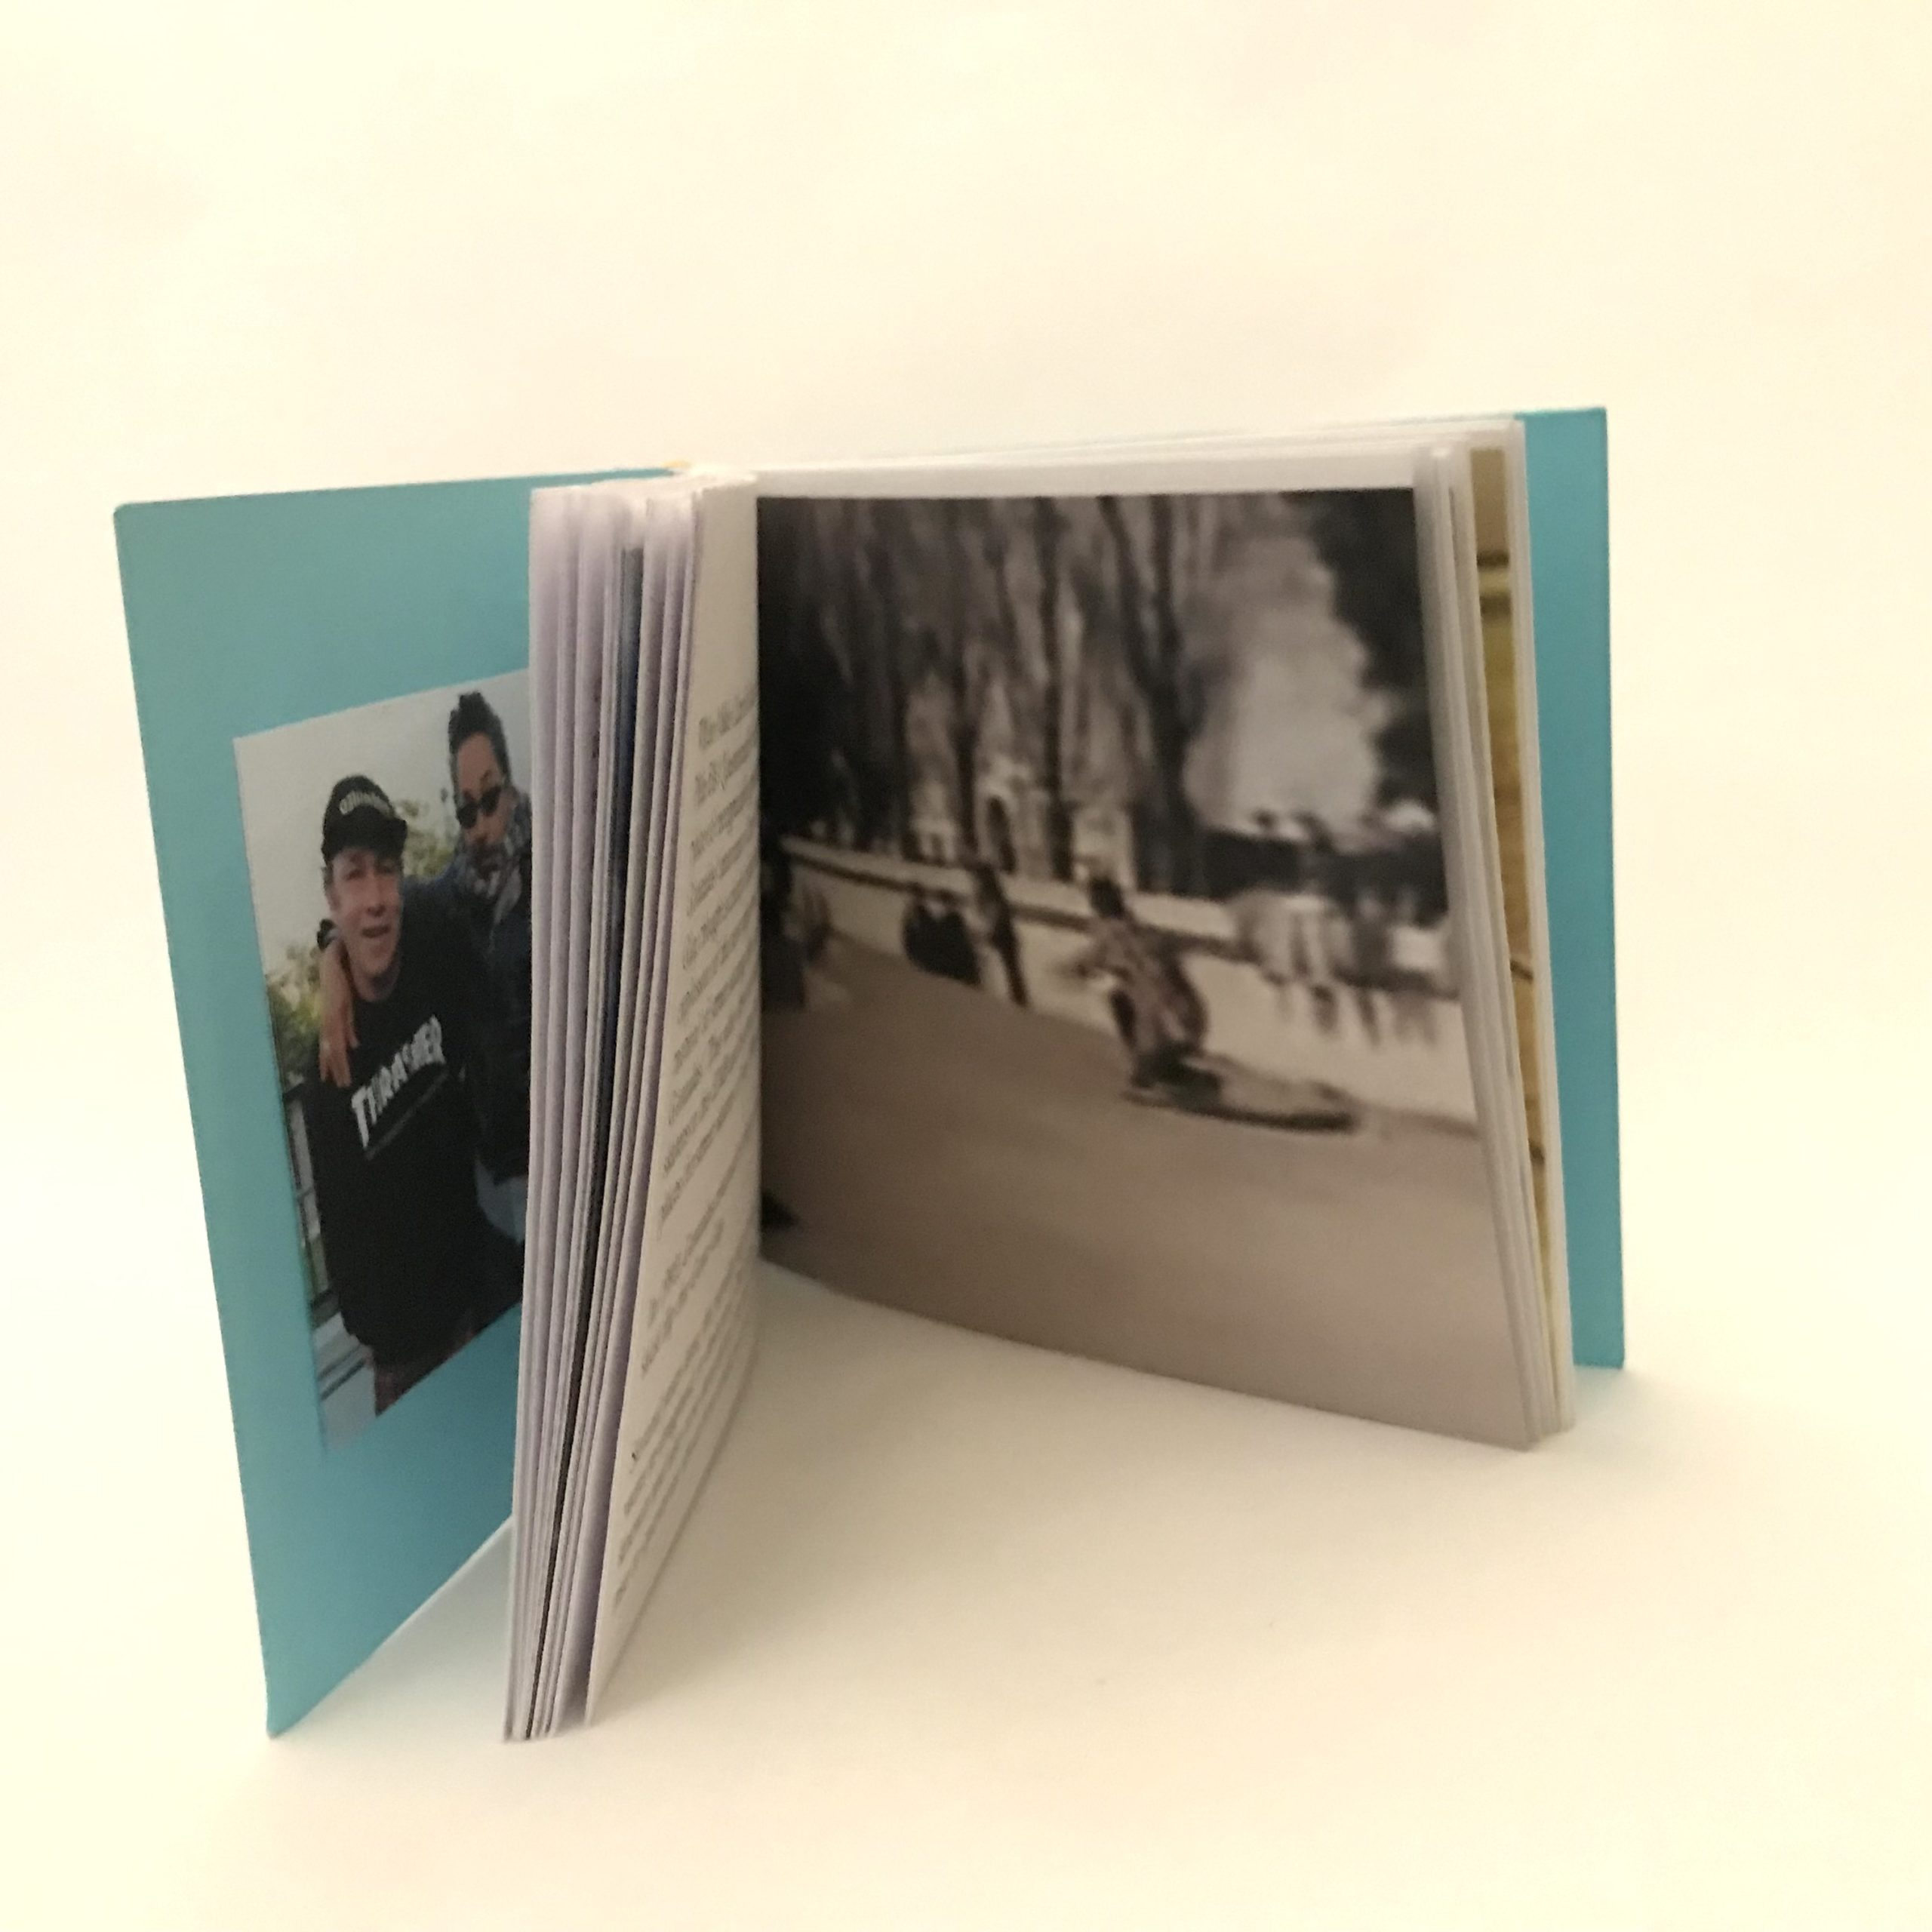 Artist's book standing upright and open on white background. On the front inside cover is a photograph of two people. The person on the left is wearing a black baseball hat and sweater with the words 'Thrasher' in white. The person on the right has their arm around the person on the left. They are wearing sunglasses, a scarf and a leather jacket. Other opened pages depict unreadable text and a screen capture of a person compressed on a skateboard after landing a trick. People in the background are standing and sitting on ledges observing the trick.